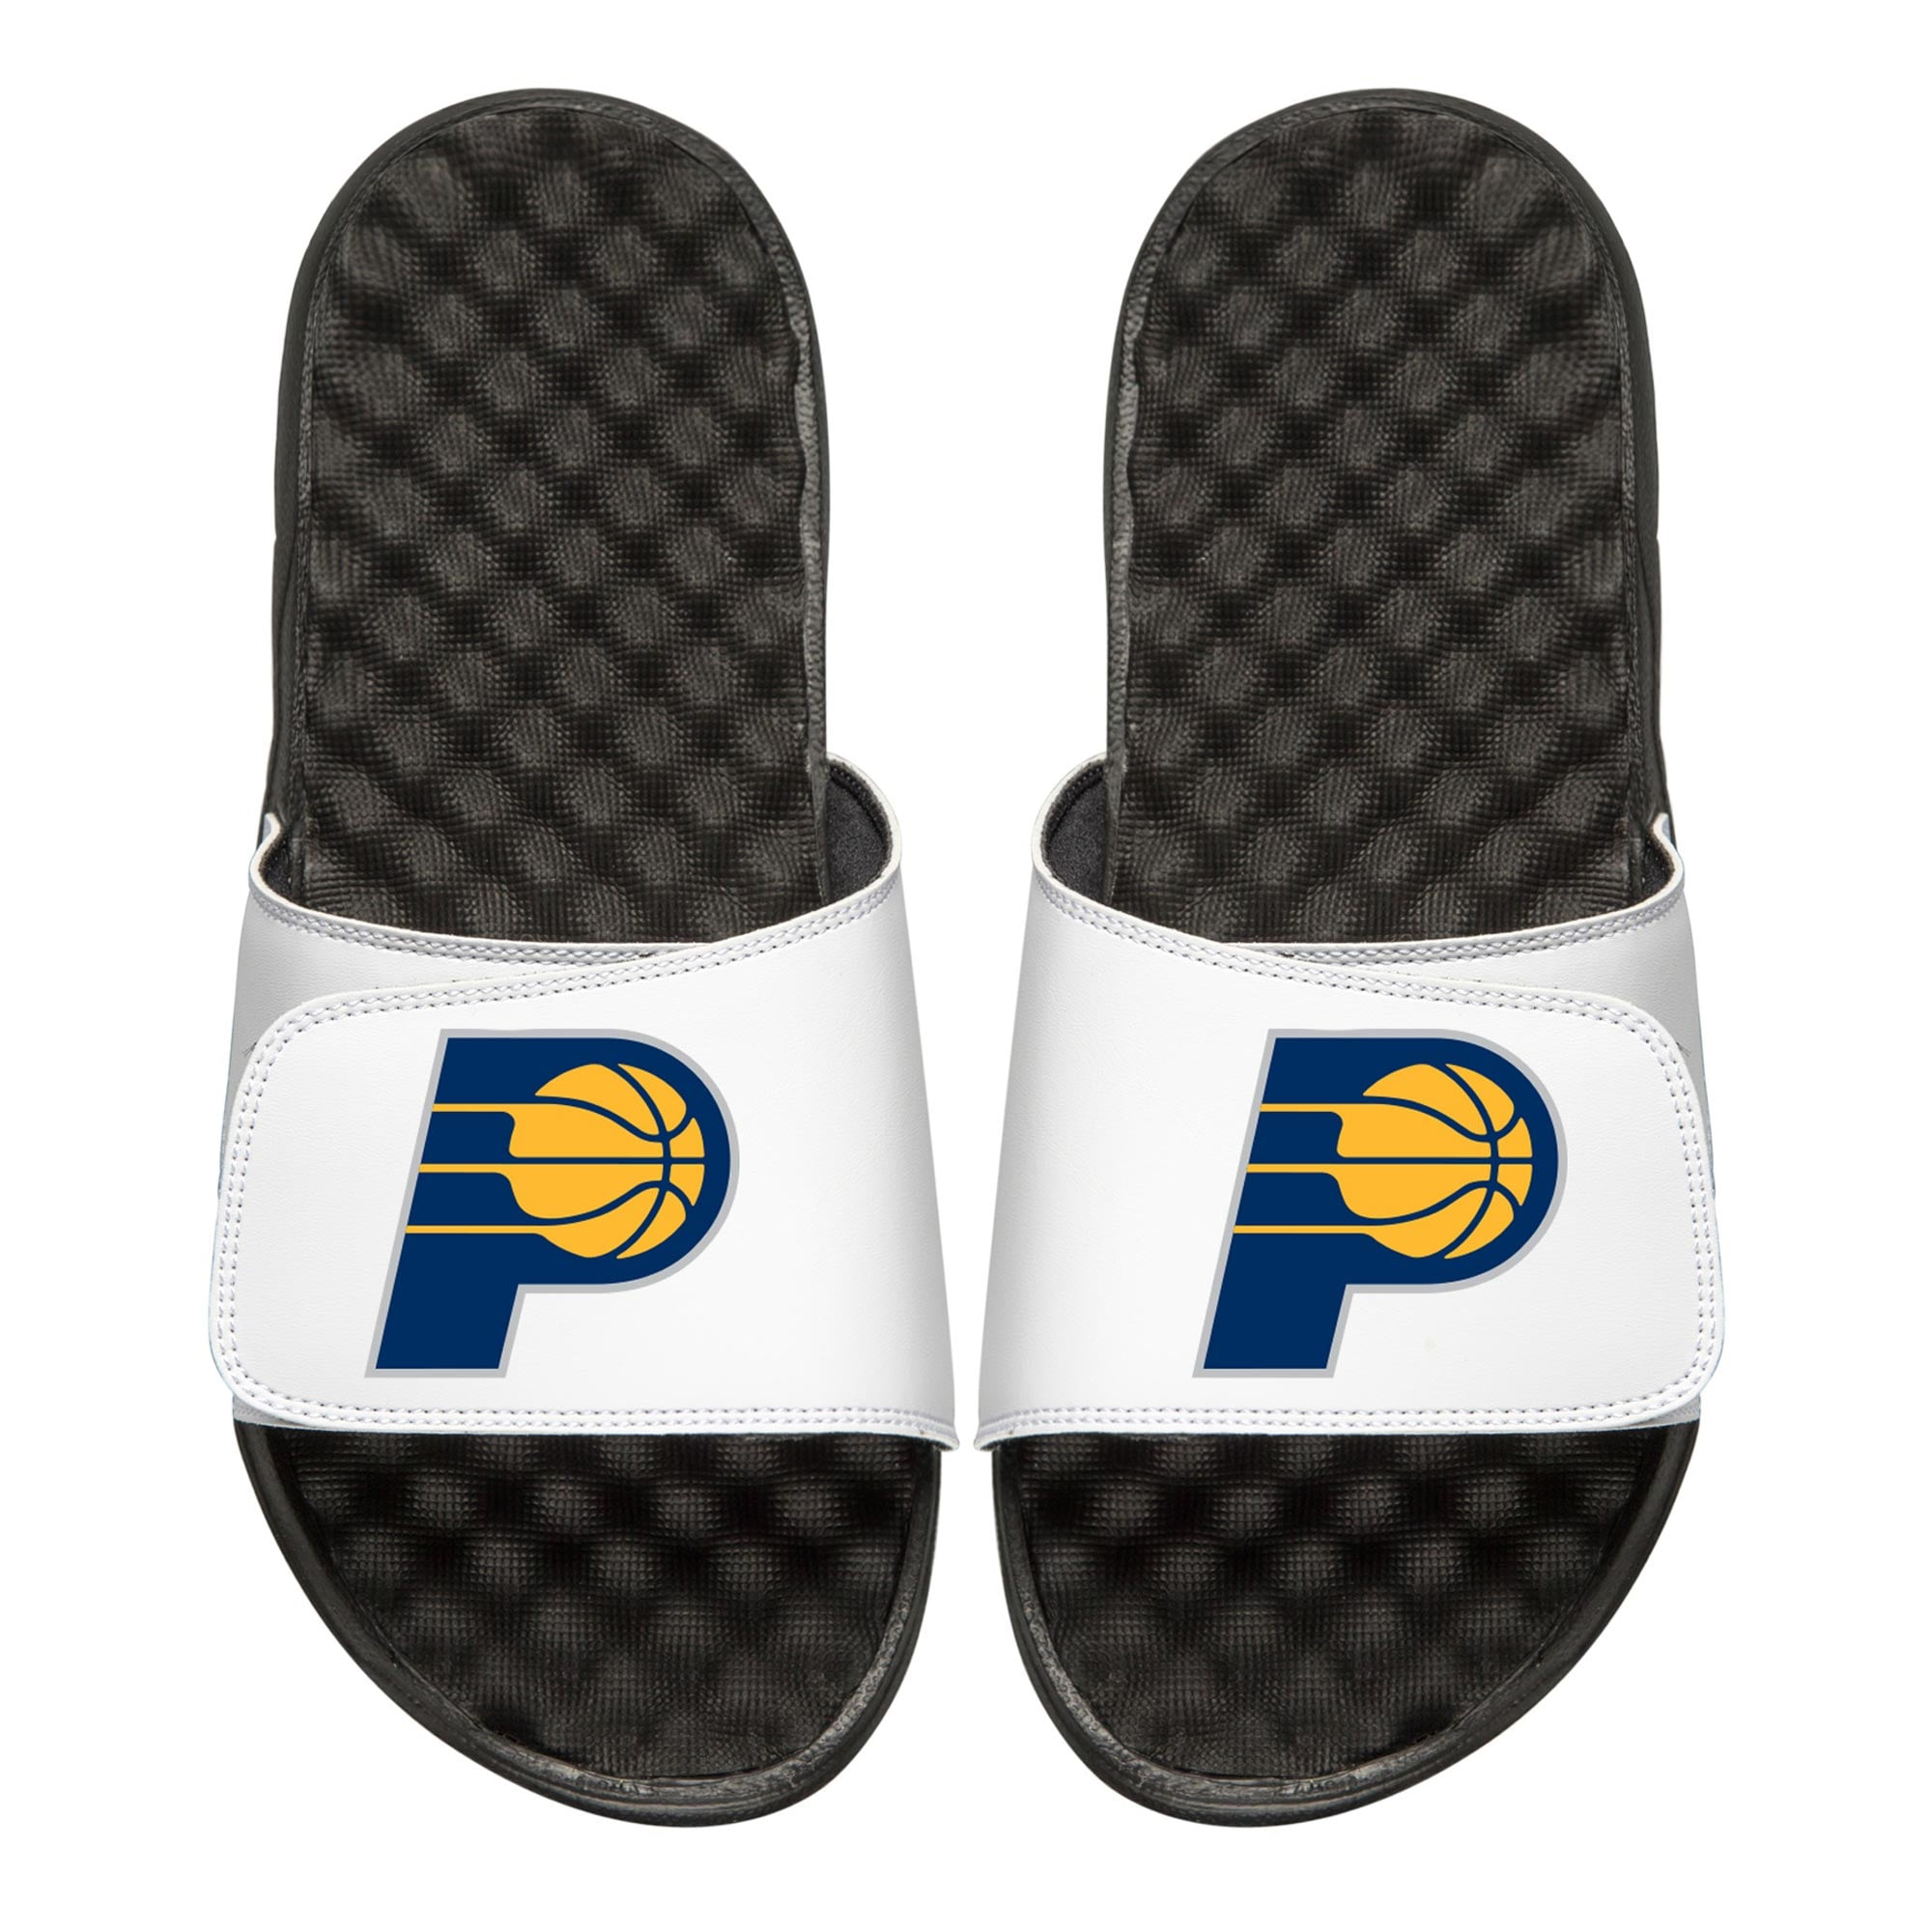 Indiana Pacers Primary iSlide Sandals - White